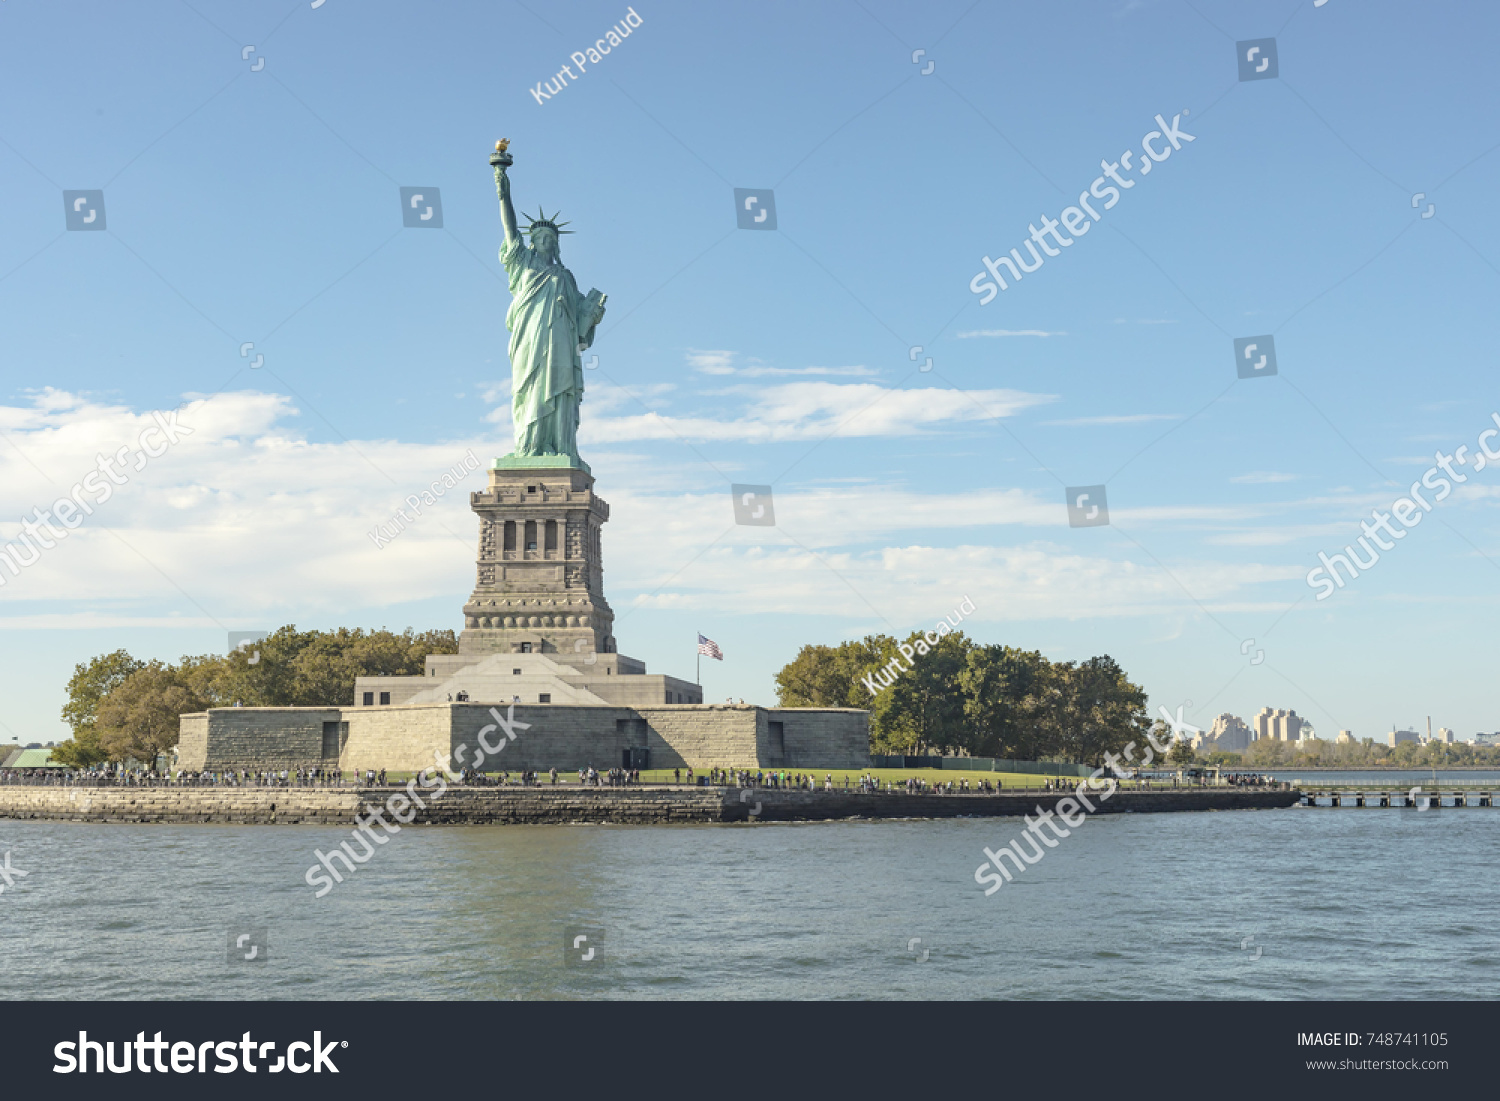 of sky a photos sunny liberty images in and clear tickets blue photo day dark statue on stock pedestal